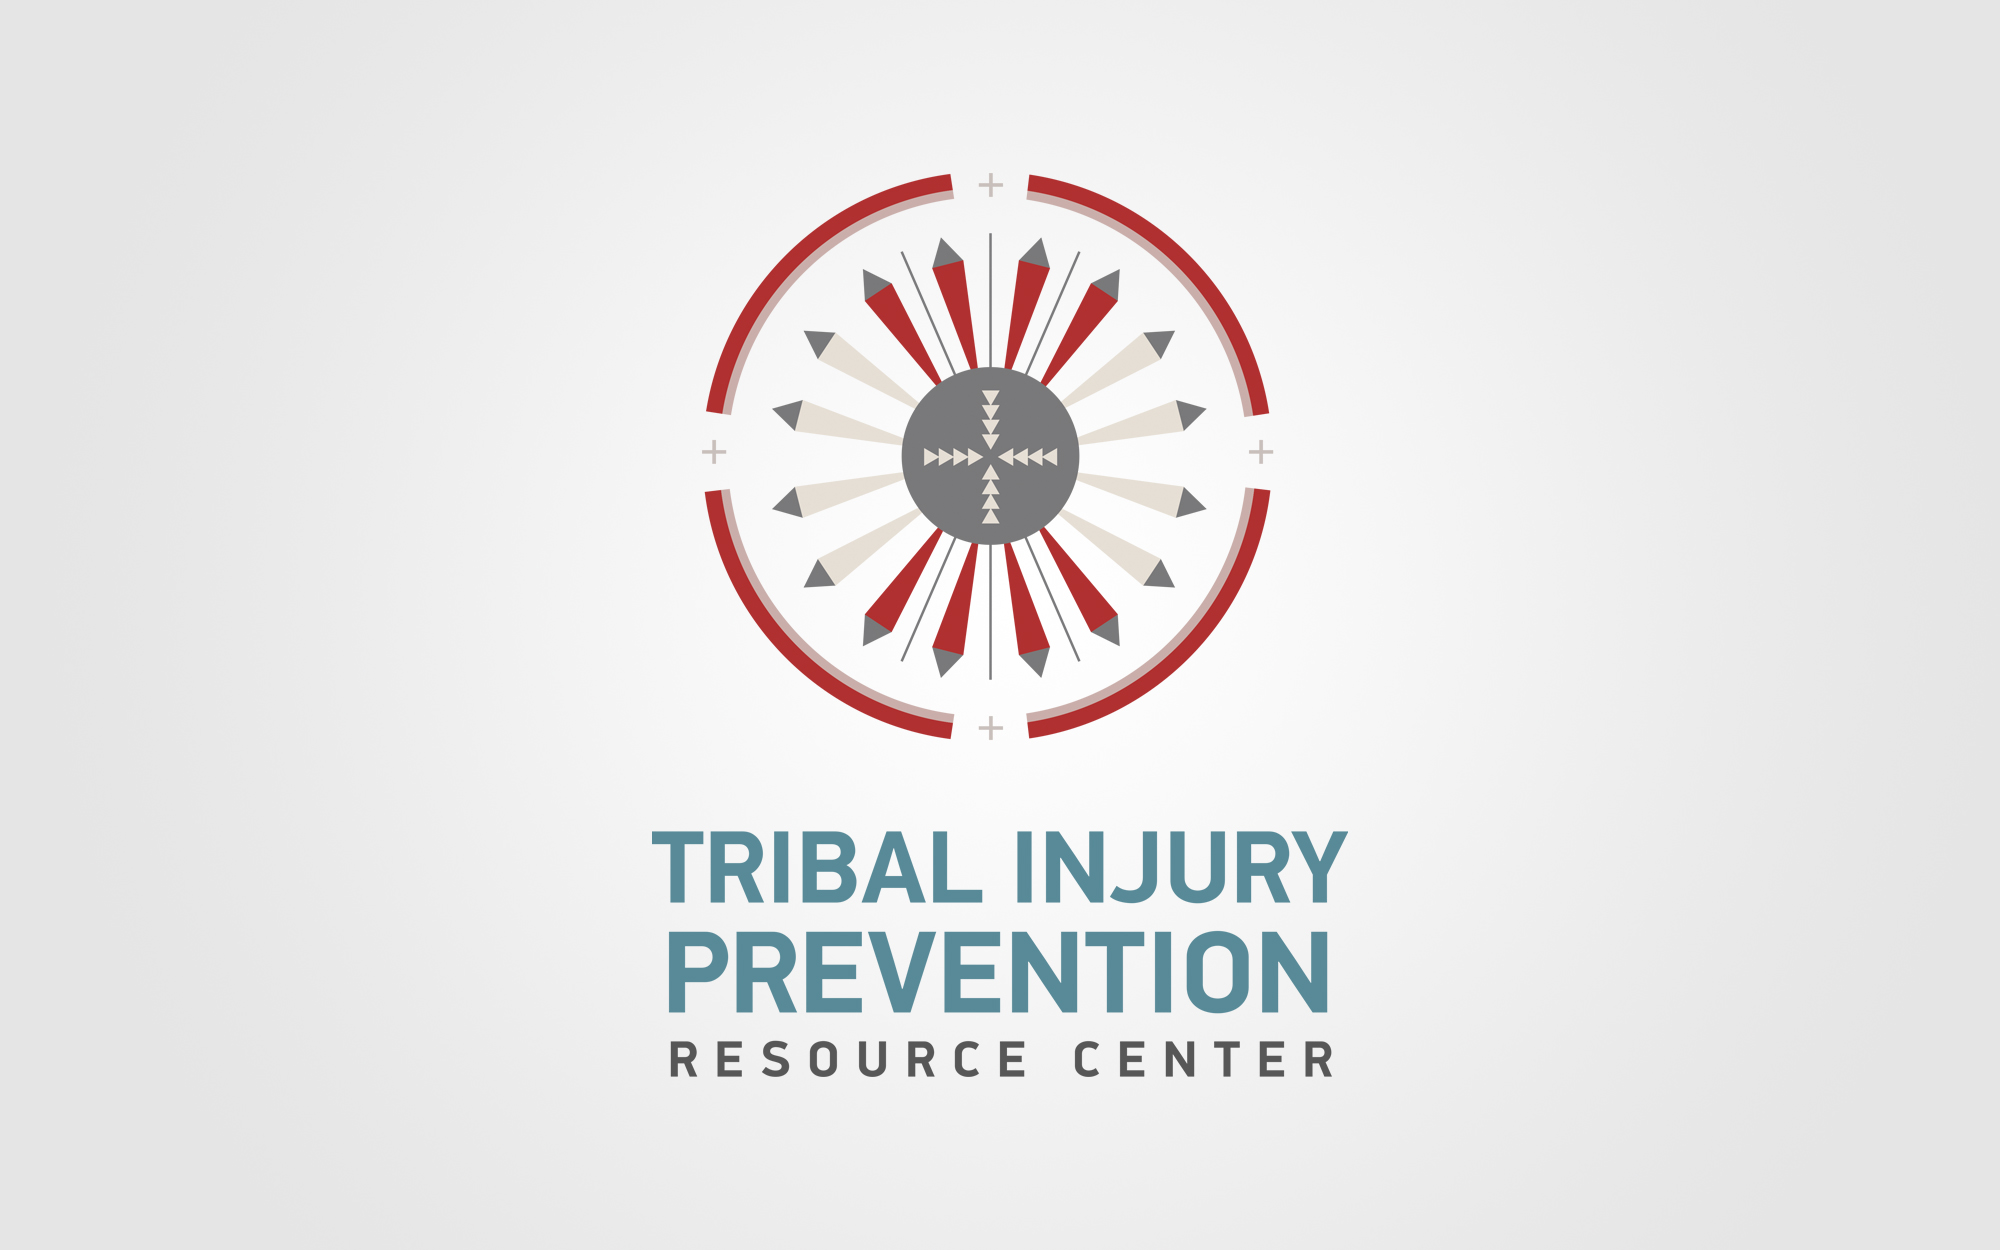 TribalInjuryPrevention_2020_01